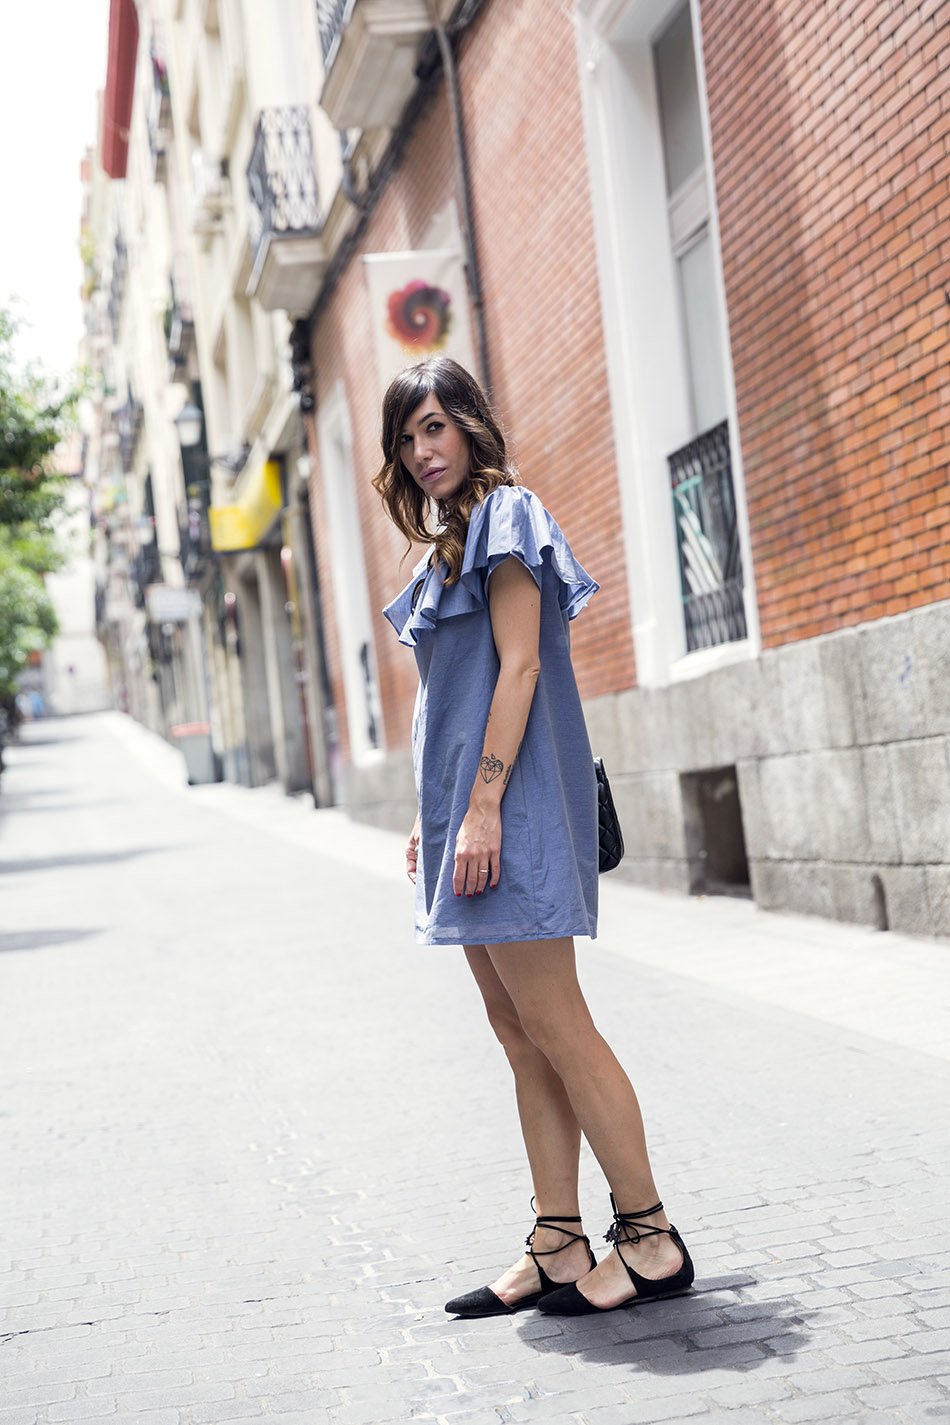 street style hakei blue dress and sandals prada sunglasses 06